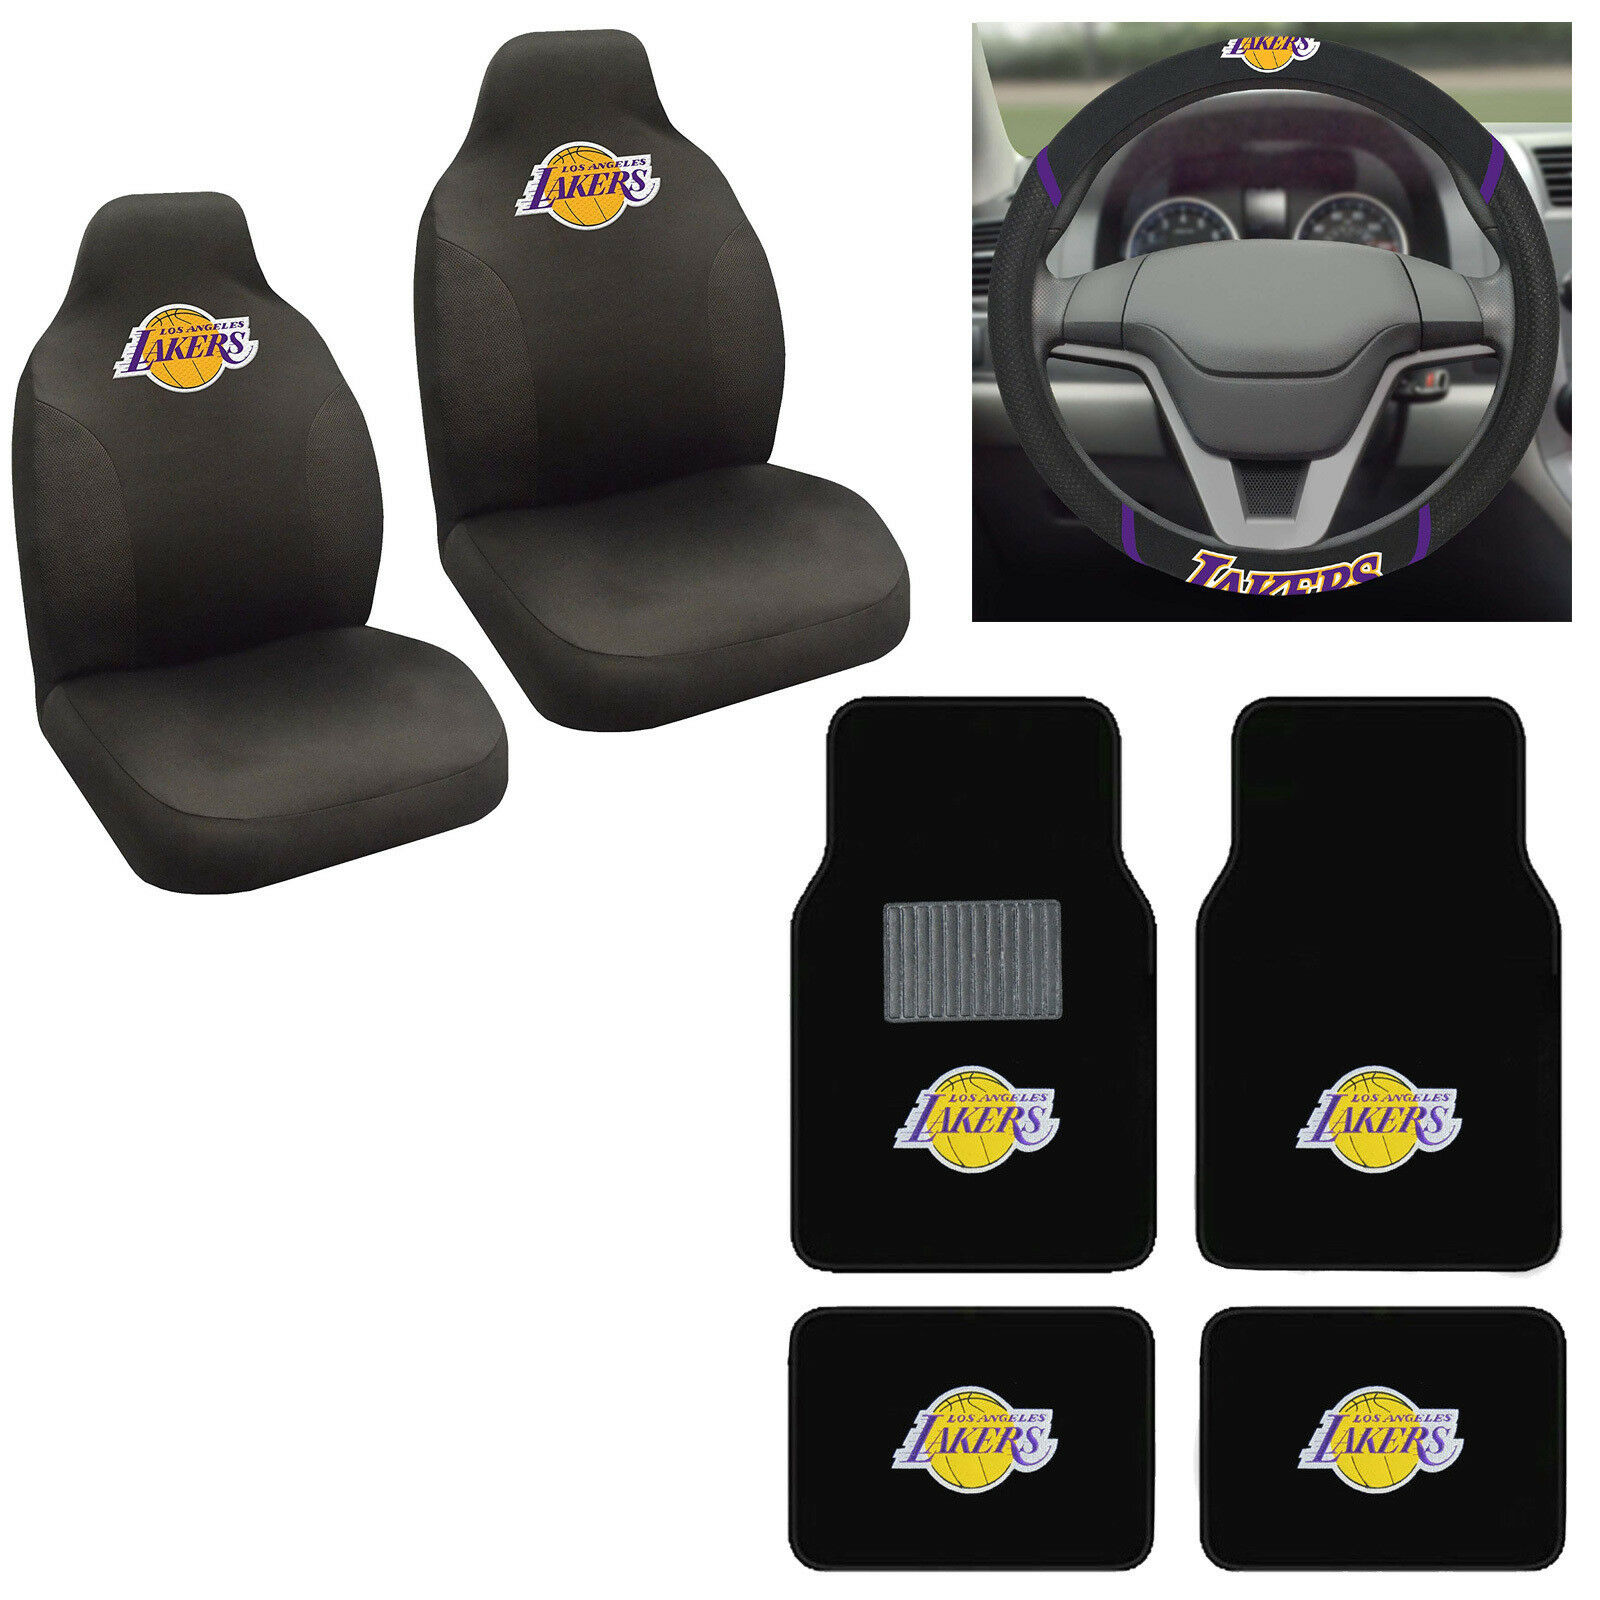 7pc NBA Los Angeles Lakers Car Truck Seat Covers Floor Mats Steering Wheel  Cover